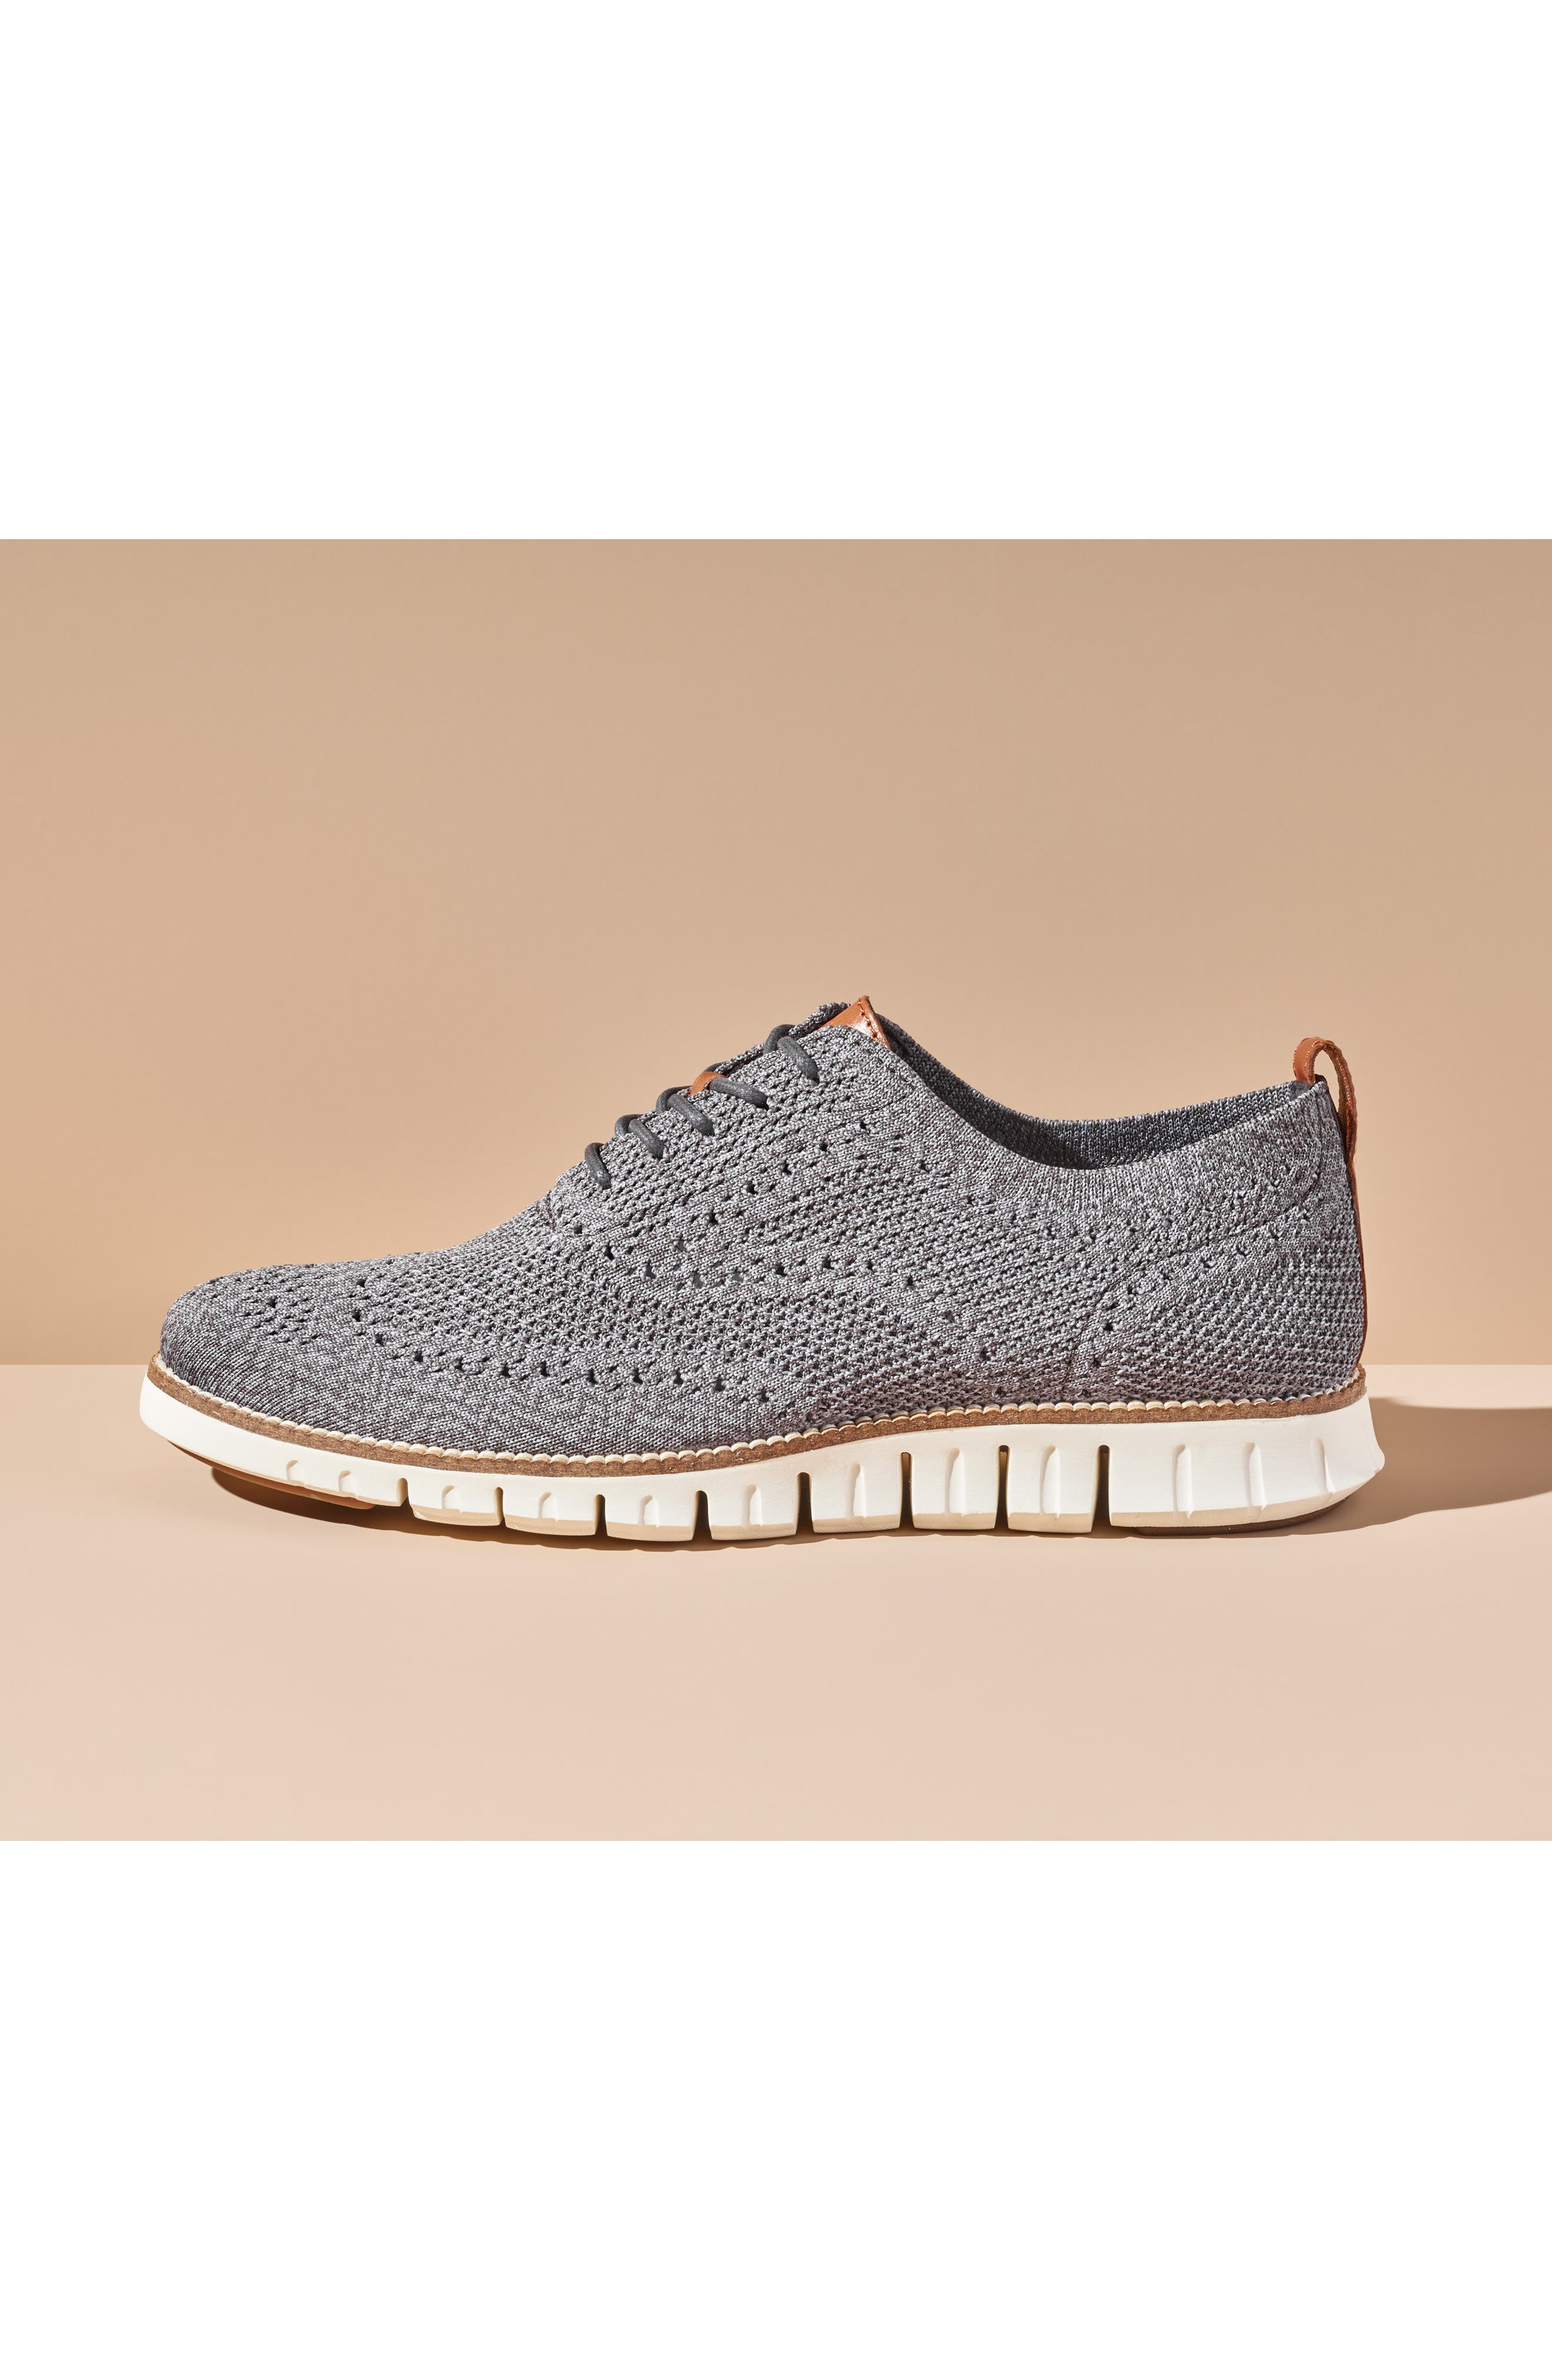 COLE HAAN ZeroGrand Stitchlite Wingtip, Main, color, 004